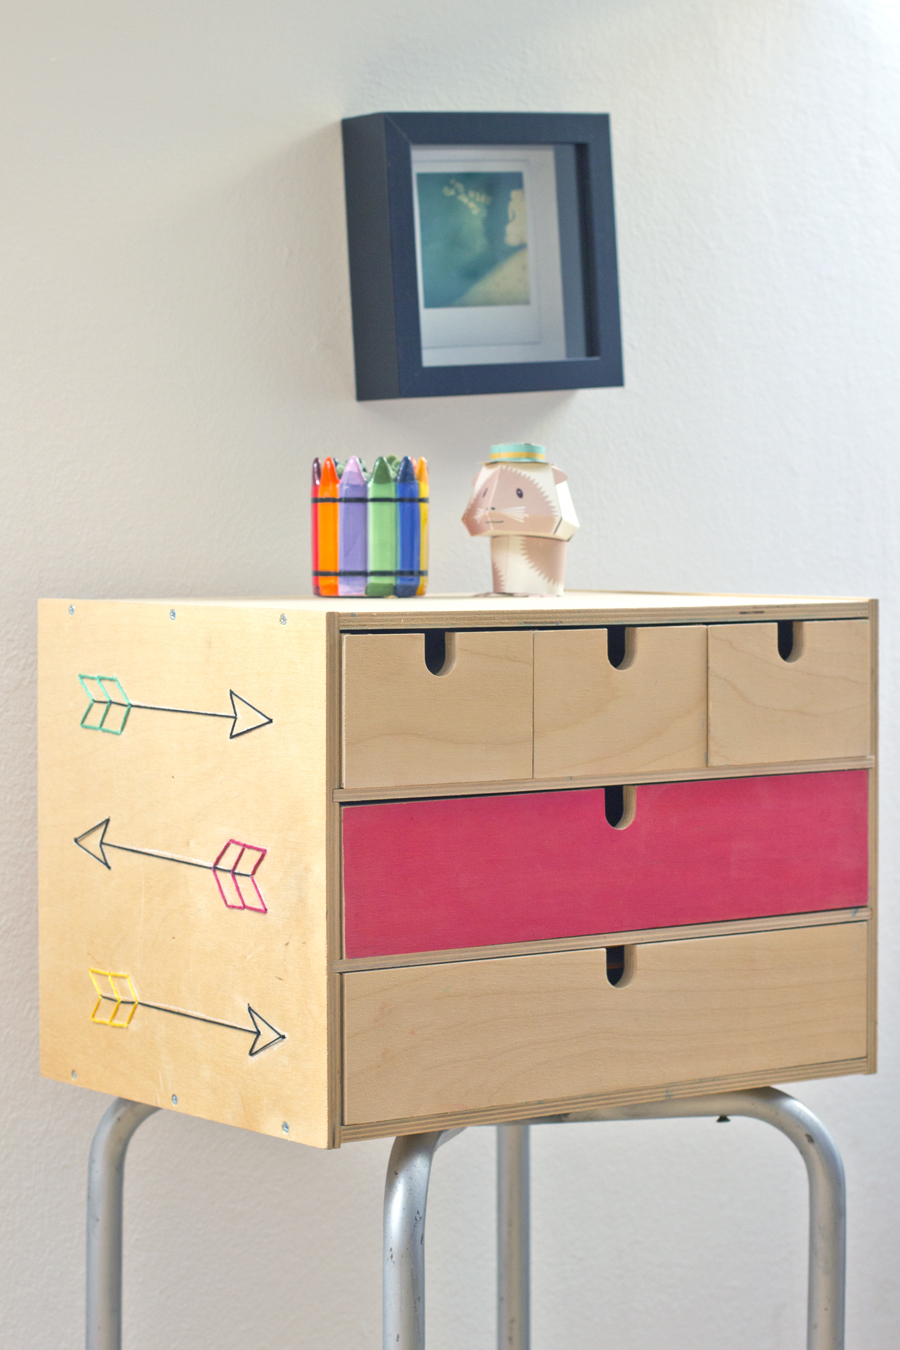 60 crafty ikea hacks to help you save time and money cute diy projects Ikea furniture home accessories